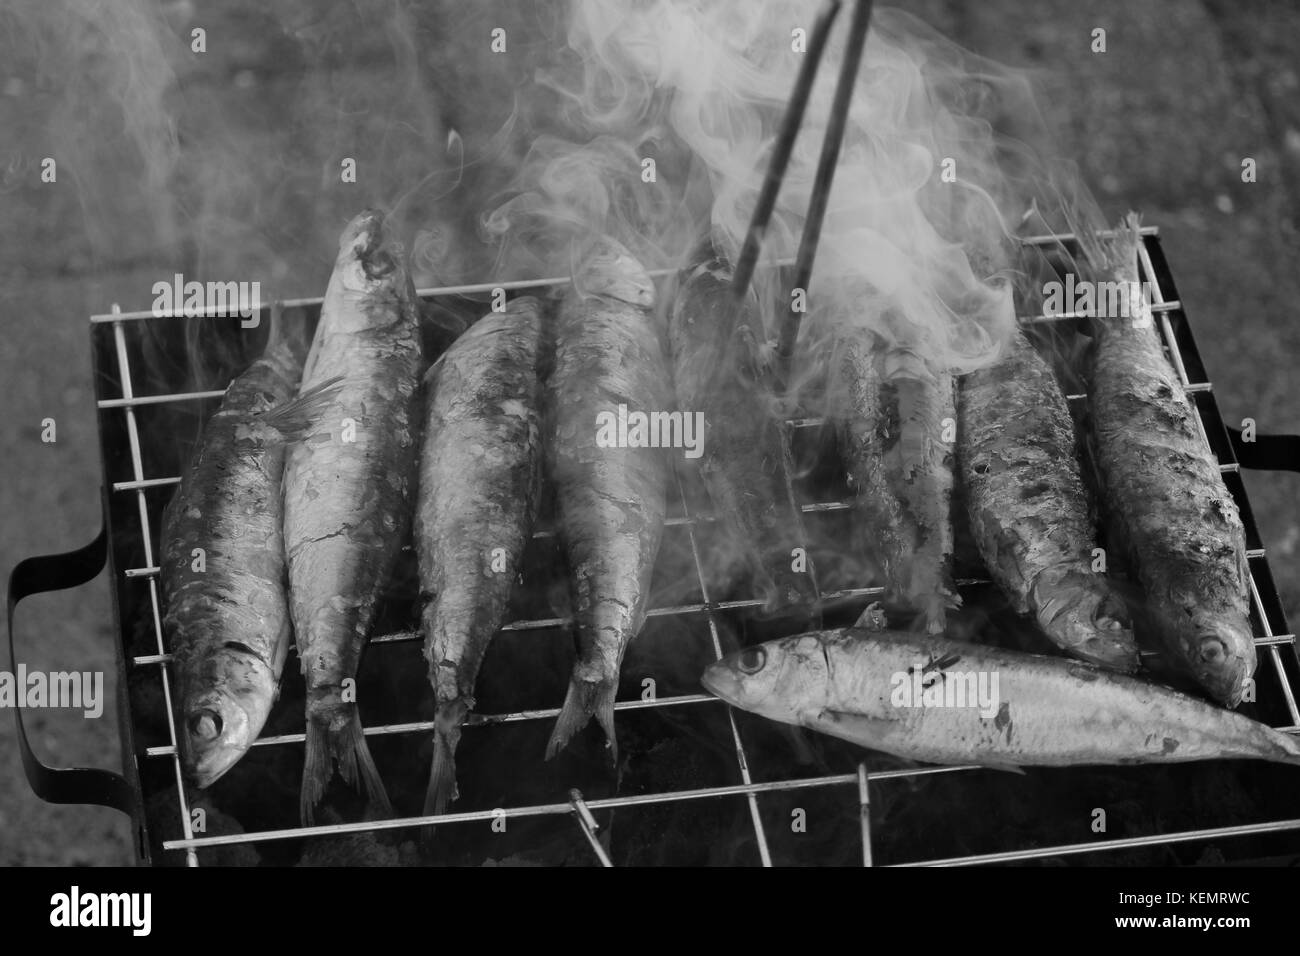 Freshly grilled sardines on the grill - Stock Image